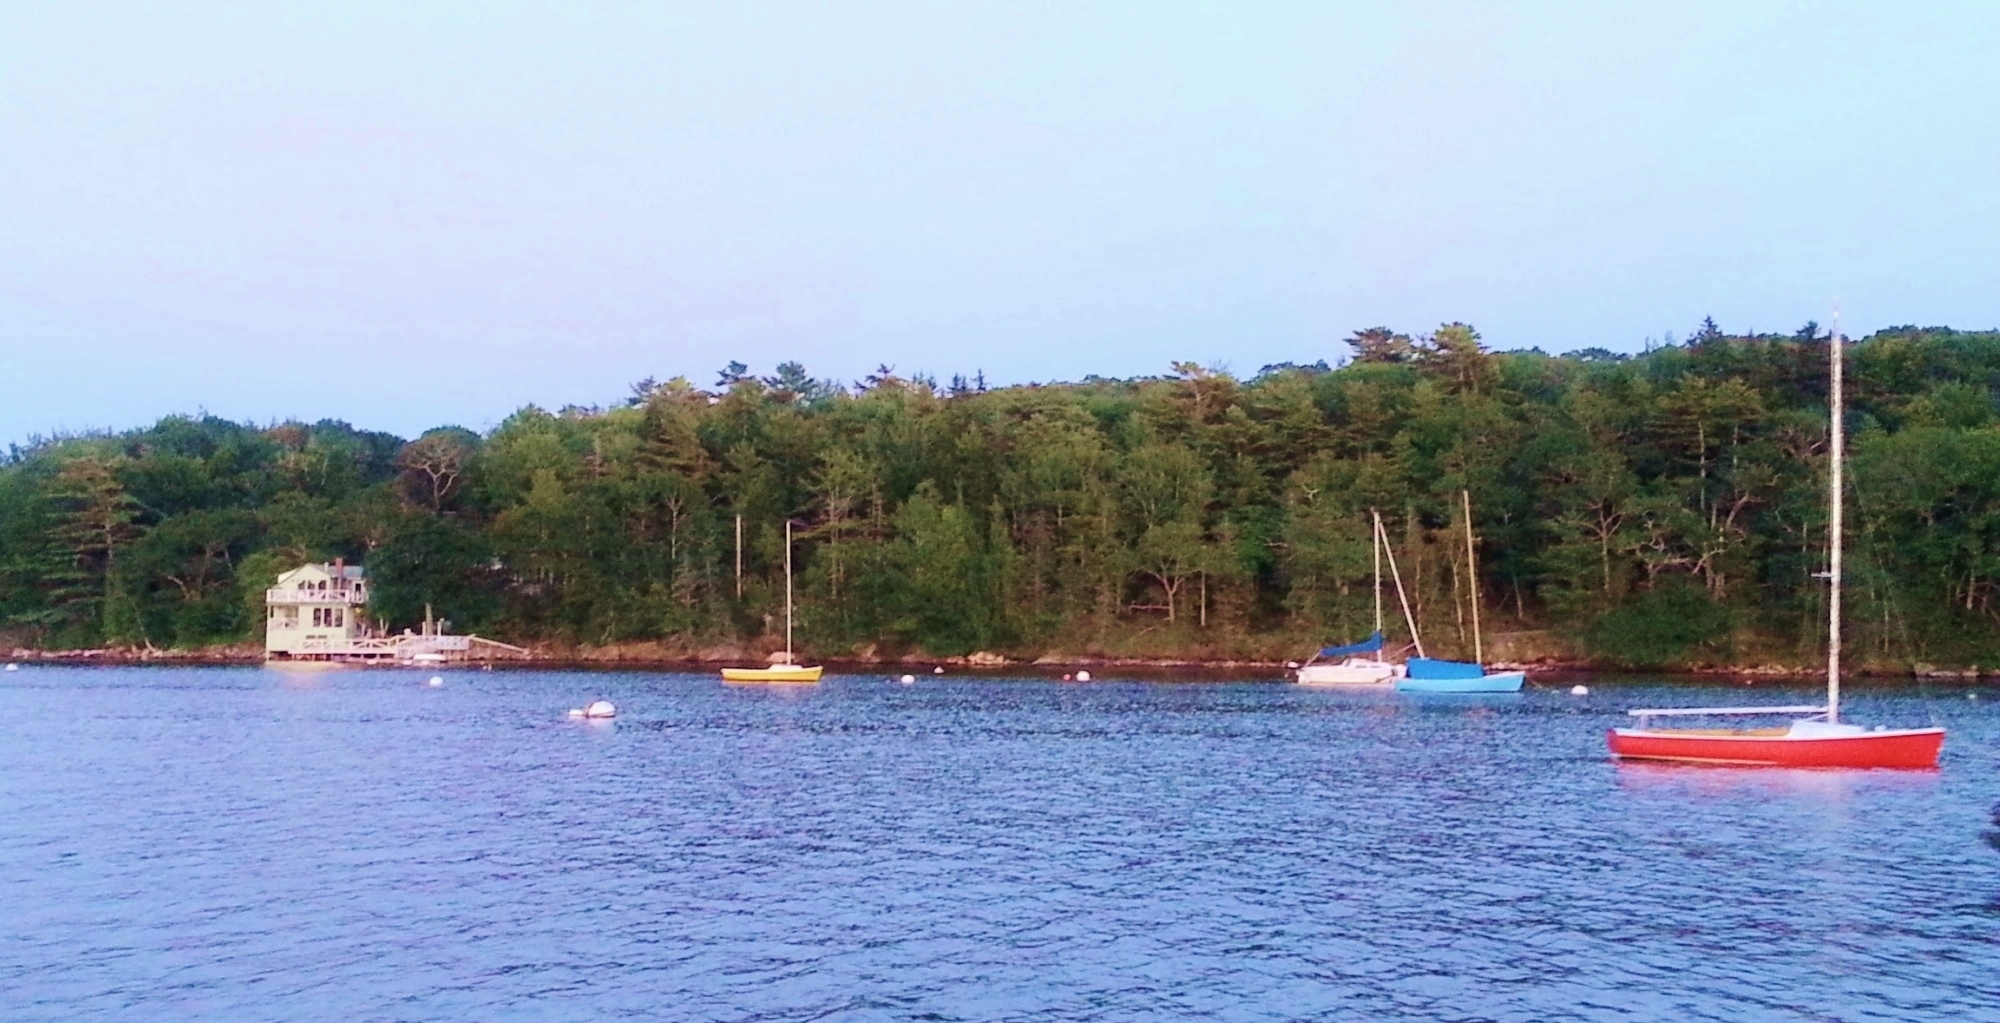 Approaching Seanook in the evening by boat across Linekin Bay